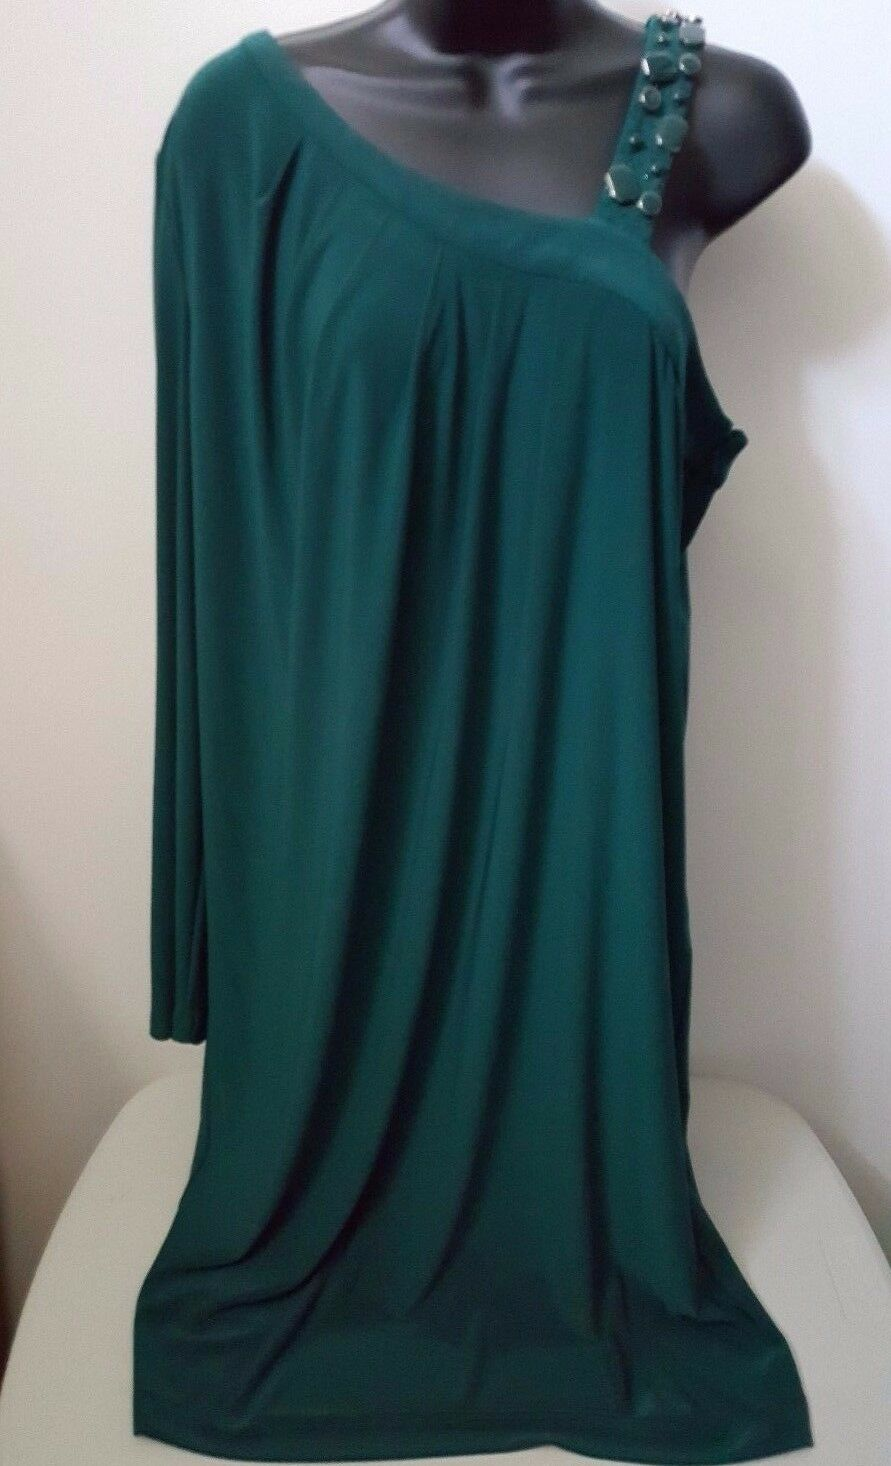 Adrianna Papell NWT Womens Green w  Gems Casual Formal Evening Dress Size 16